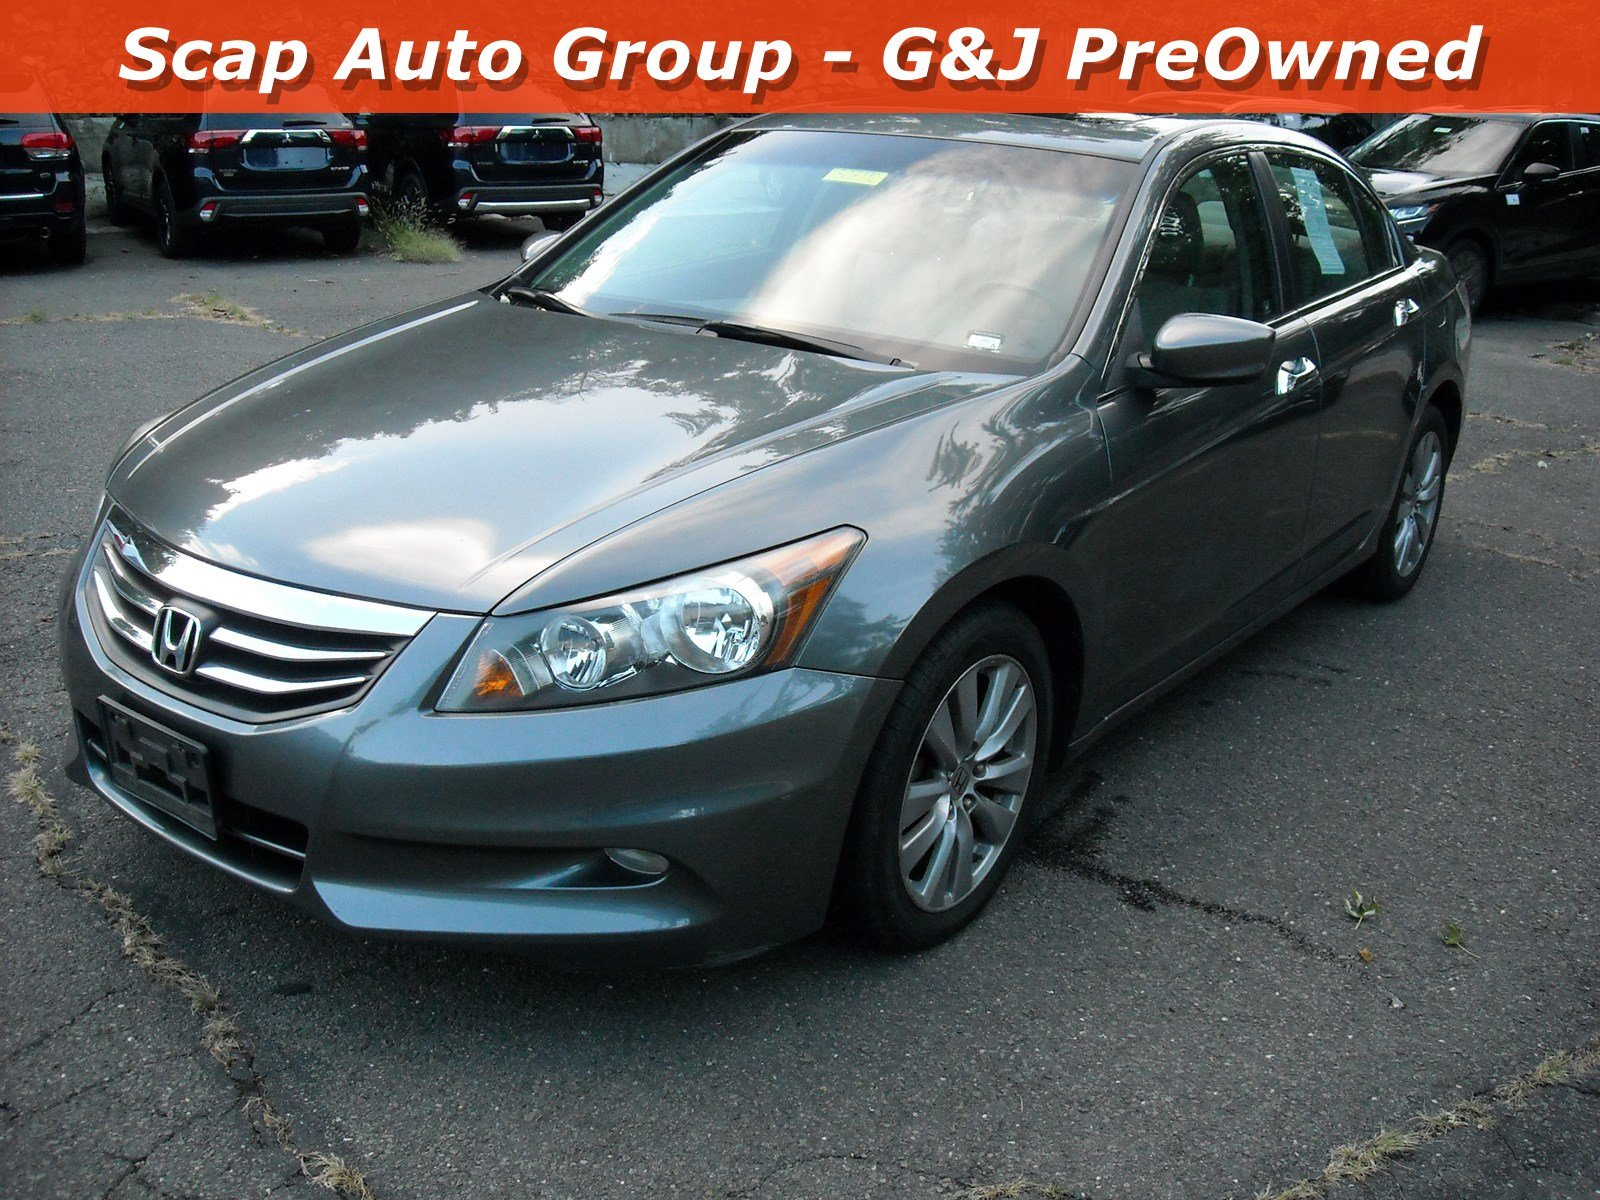 Used 2011 Honda Accord Sdn EX-L V6 Auto EX-L for sale in Fairfield CT